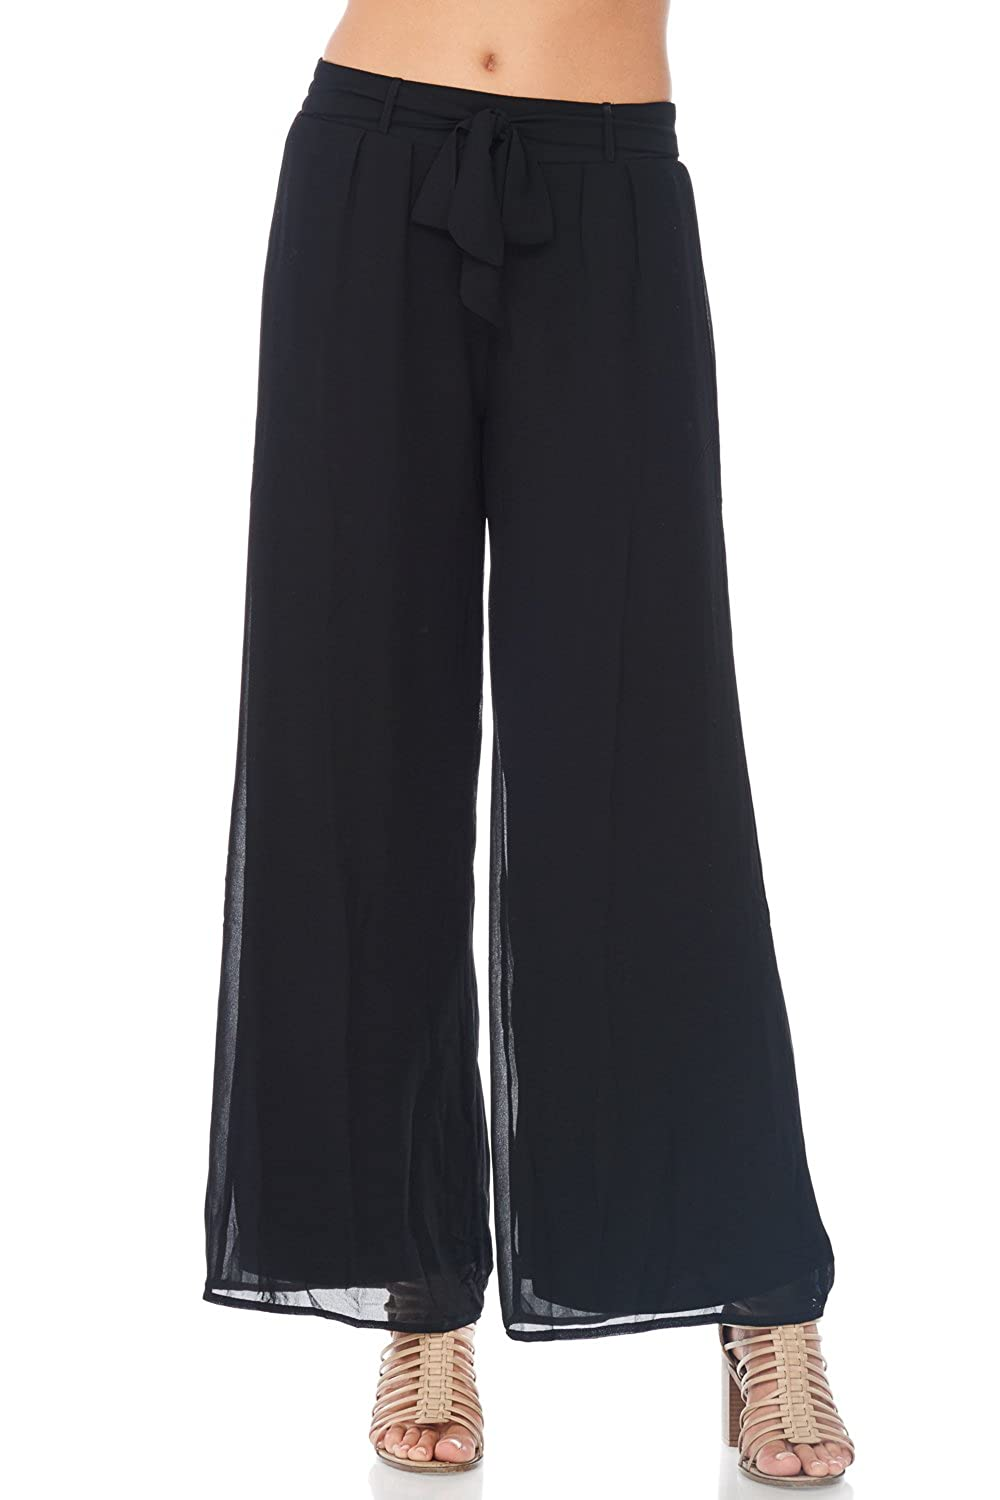 c45e1e5836 Amazon.com  A+D Womens Chiffon Long Palazzo Pants - Wide Leg Dress Bottoms   Clothing